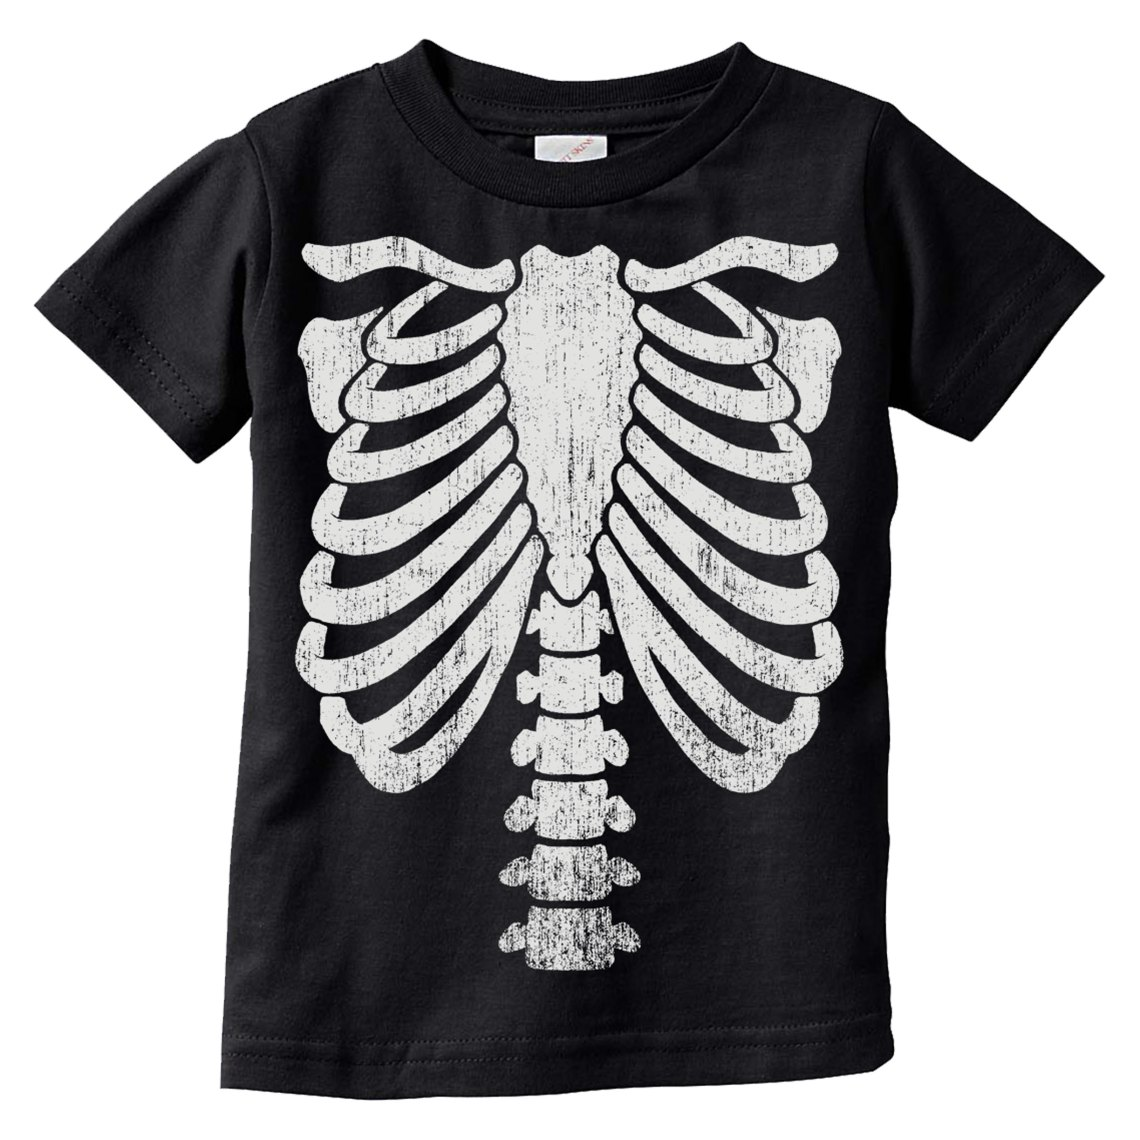 STORE APPAREL SKELETONYOUTHTEE